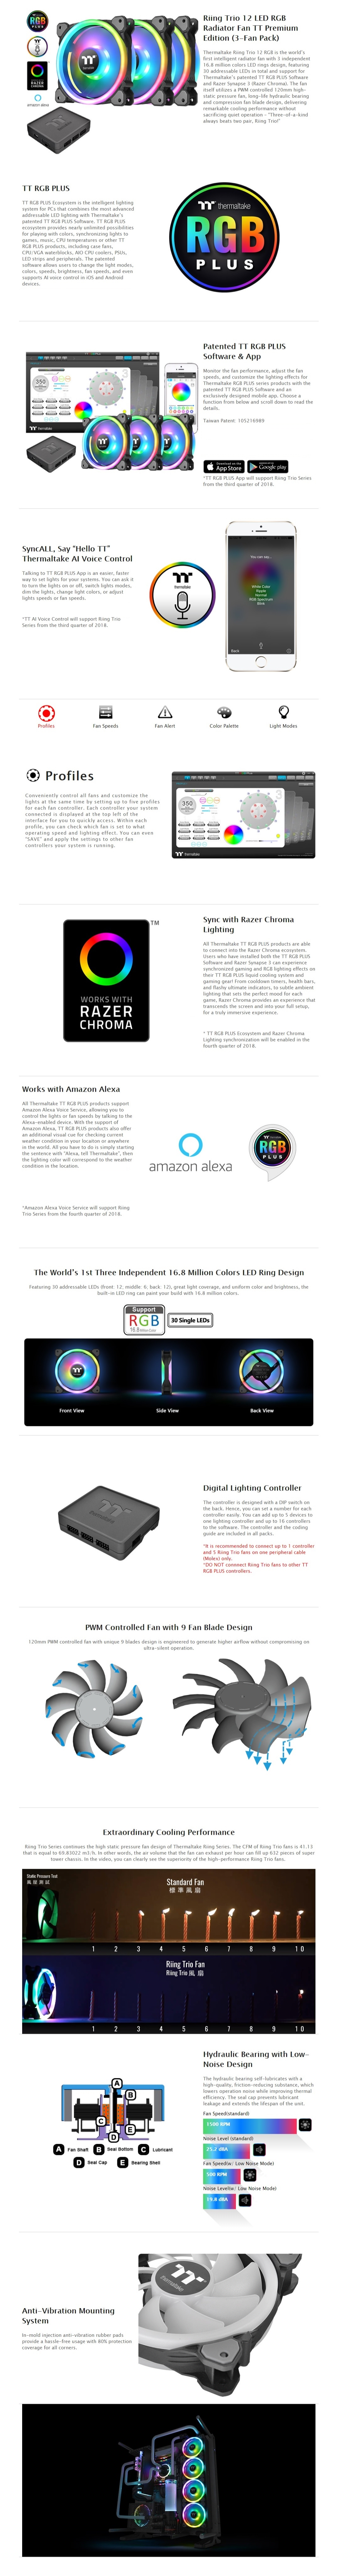 A large marketing image providing additional information about the product Thermaltake Riing Trio 12 LED RGB Radiator Fan TT Premium Edition (3-Fan Pack) - Additional alt info not provided